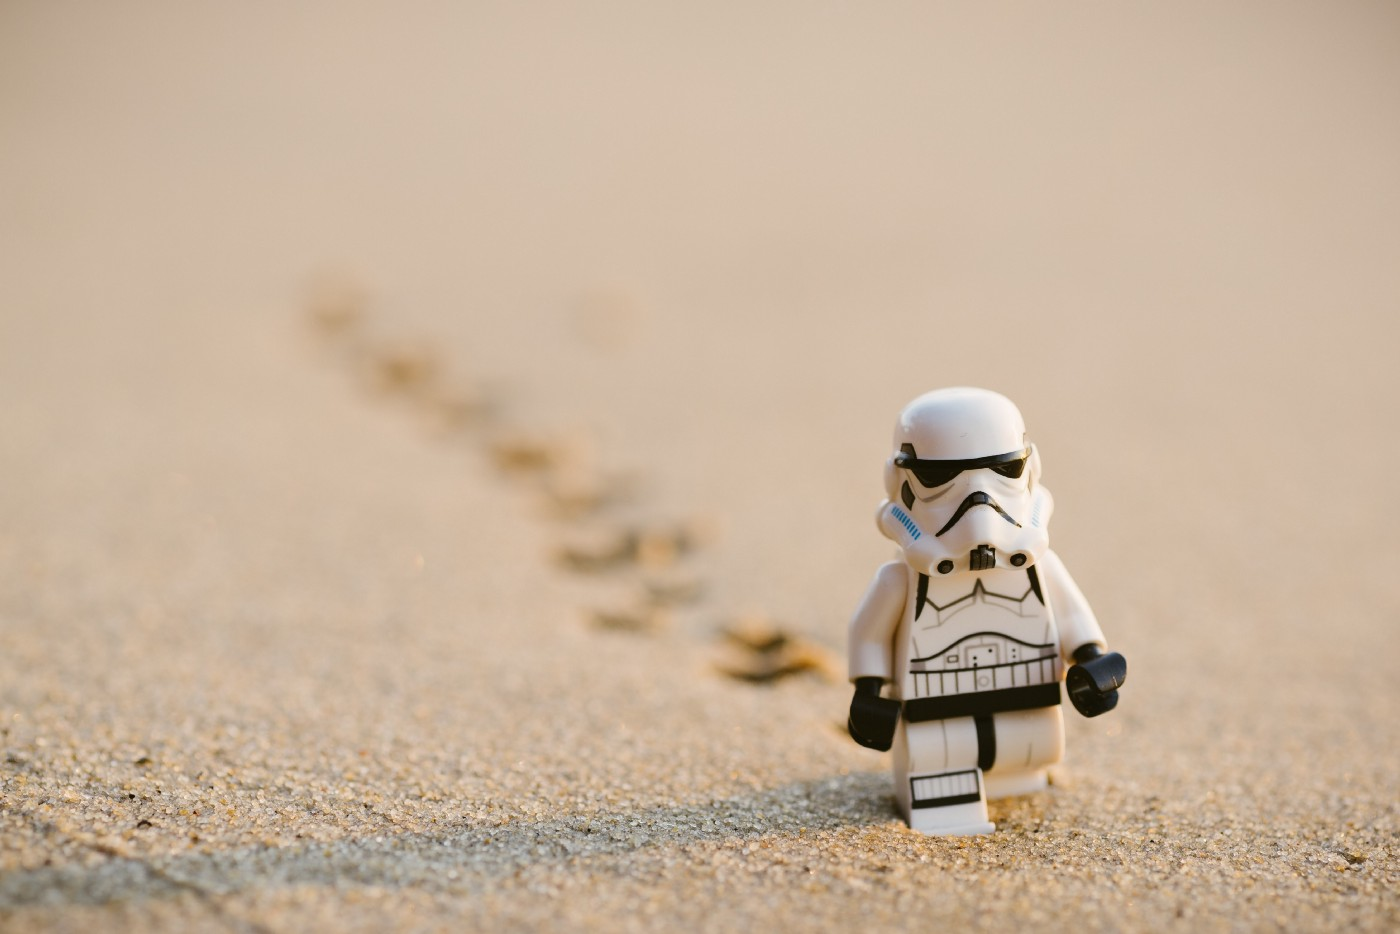 A Lego figure walking heroicly across a sanded beach.